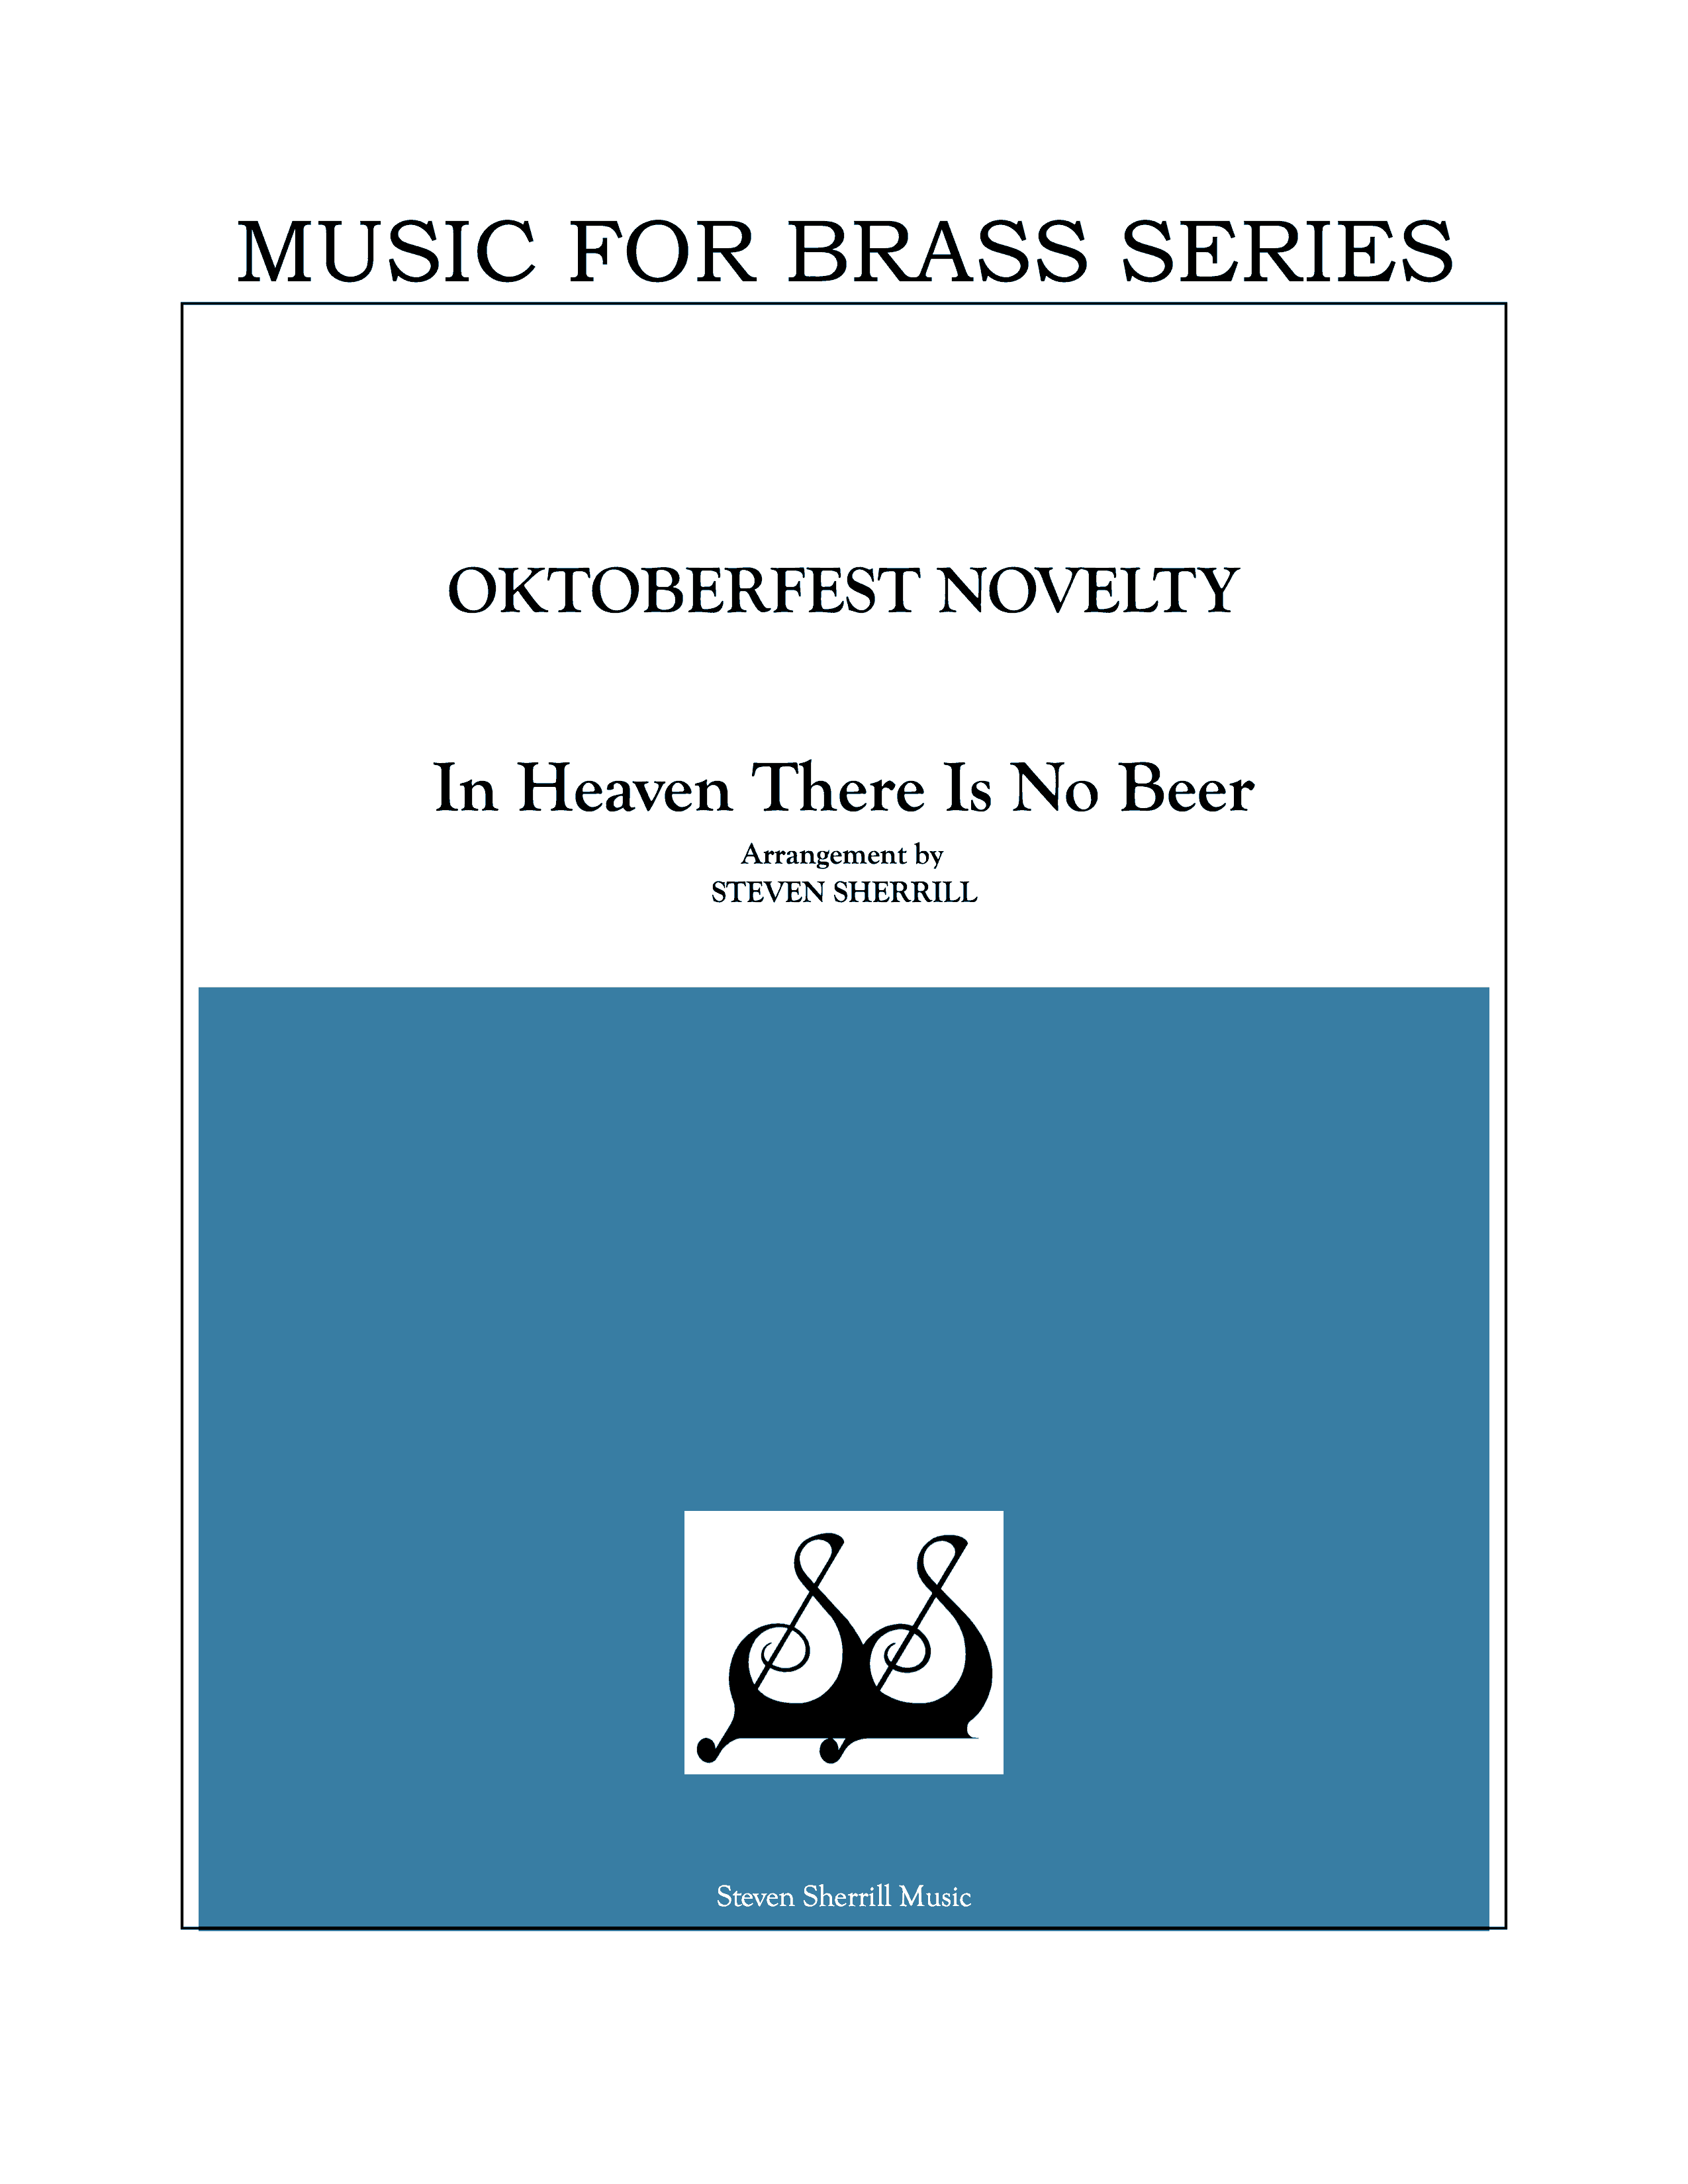 In Heaven There is No Beer (from 6 Oktoberfest Novelties) cover page